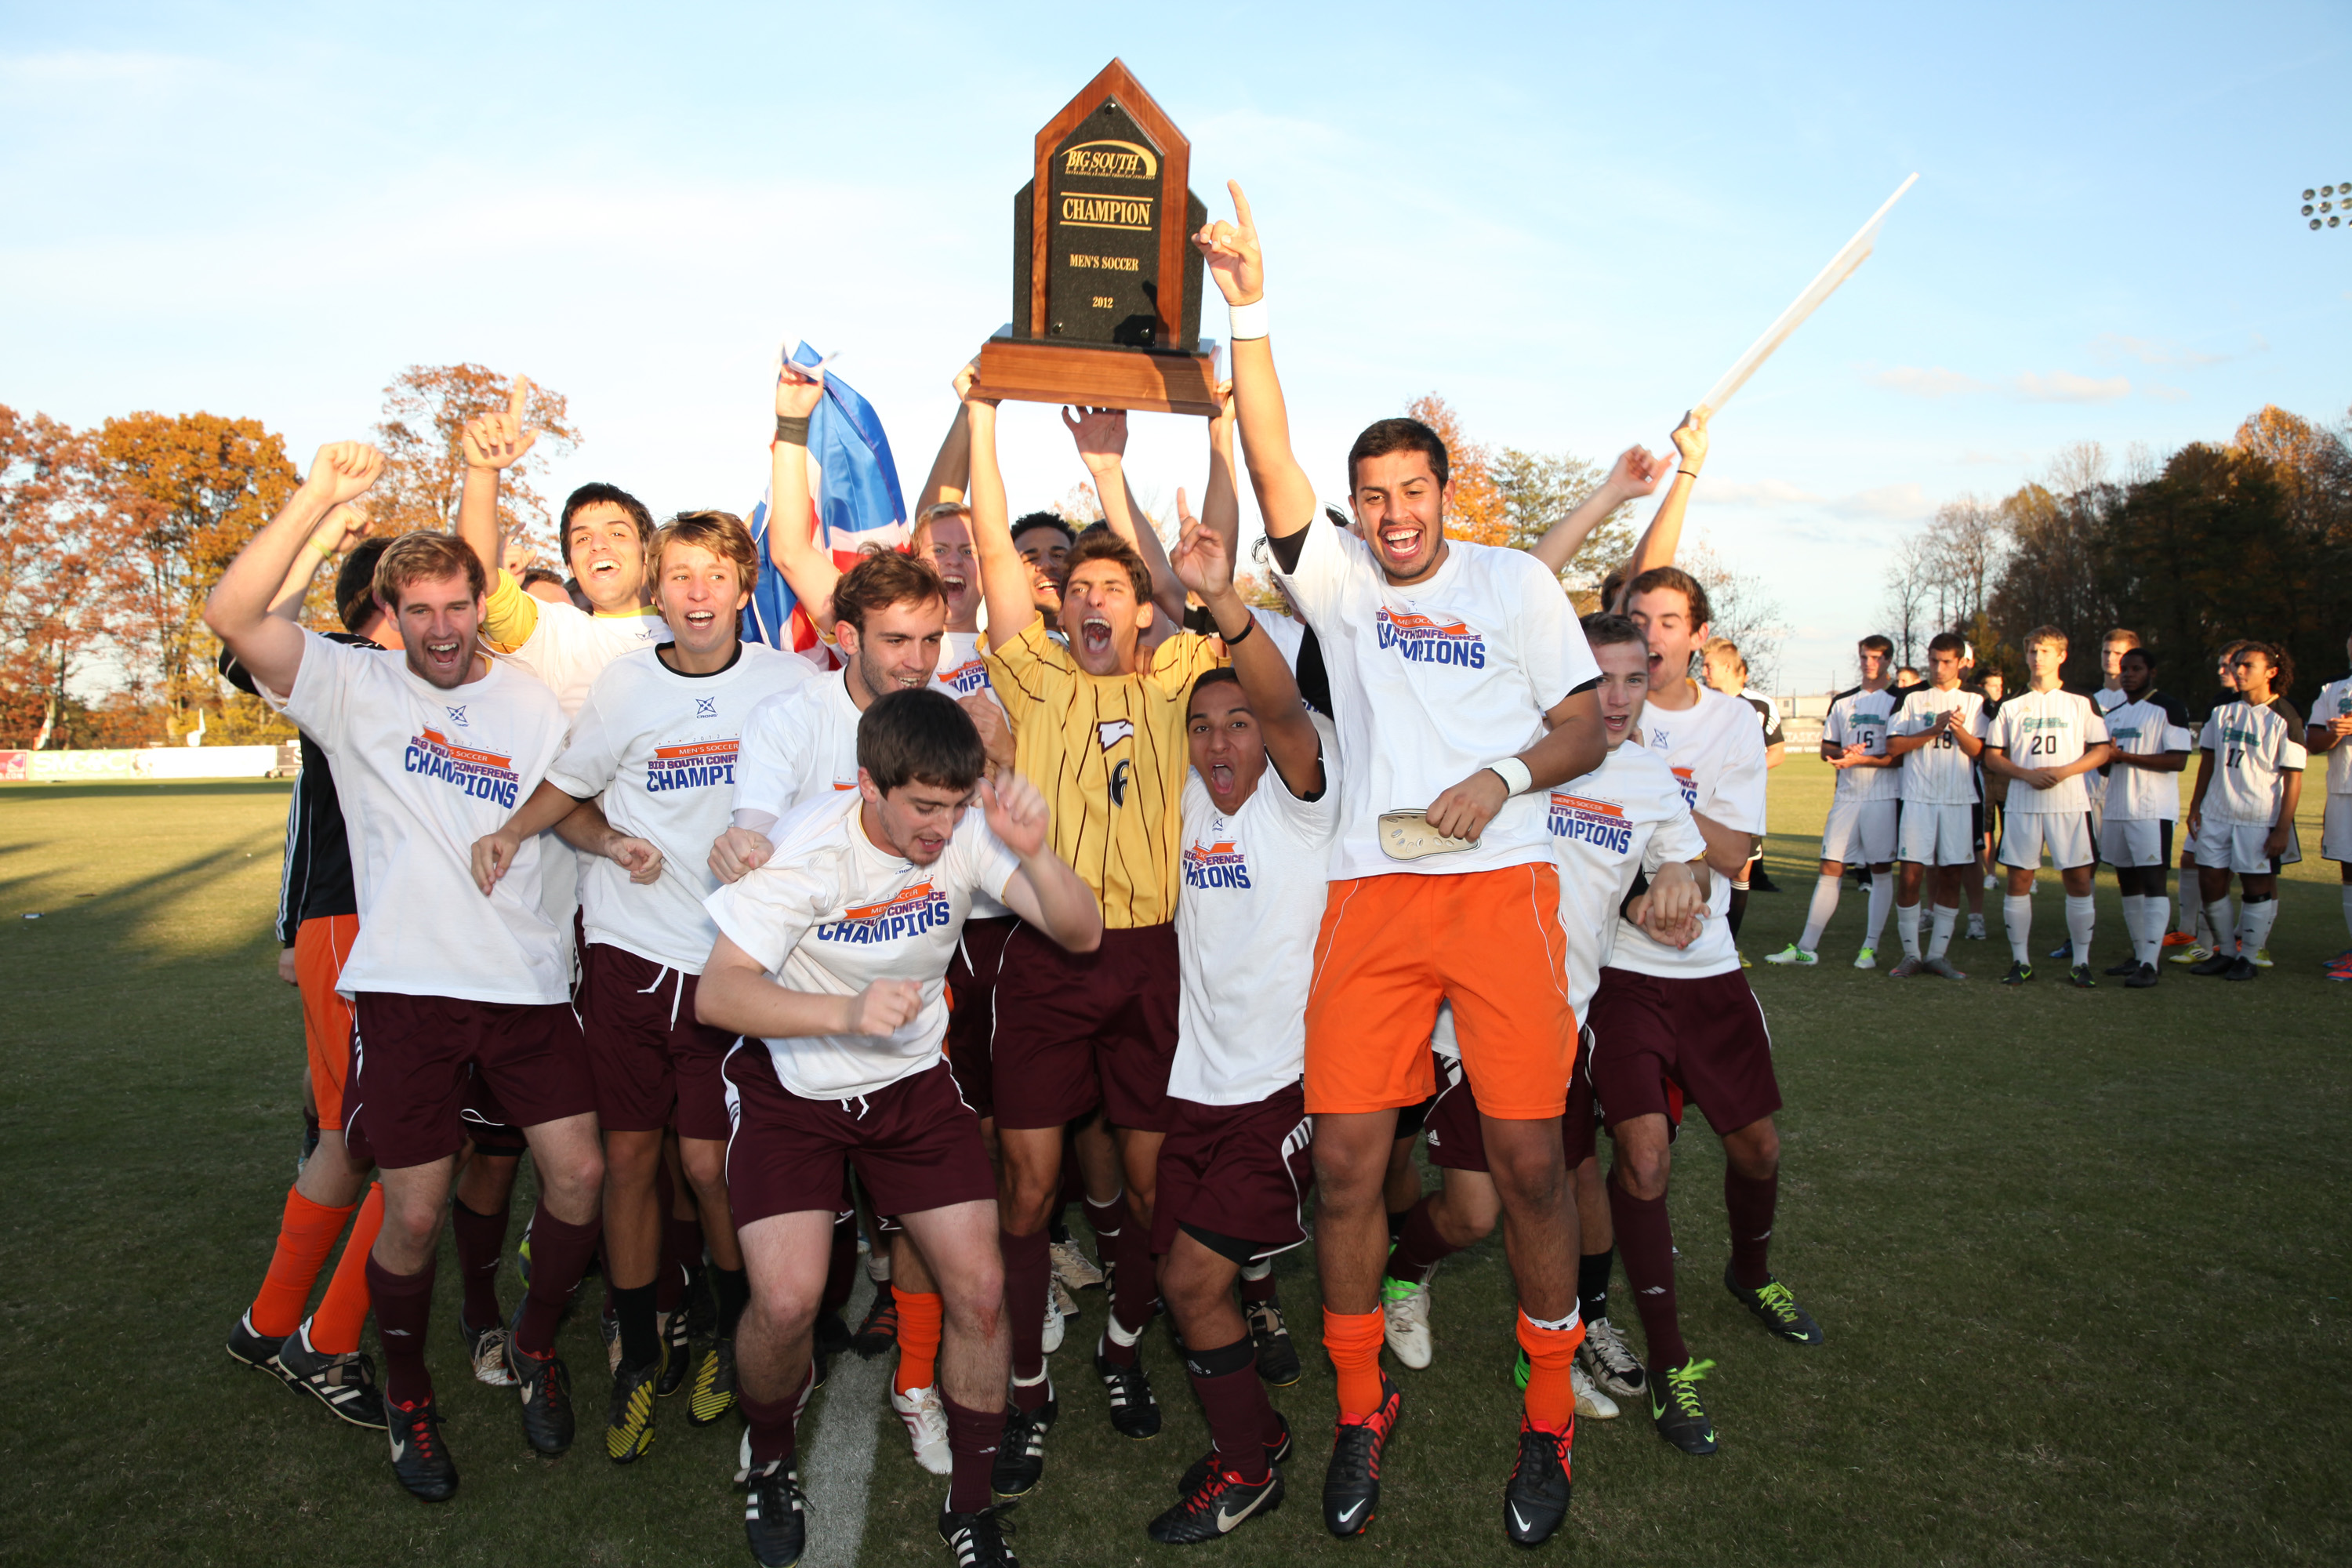 A jubilant Winthrop men's soccer team celebrates their Big South Championship victory as Coastal's players look on. Photo courtesy of bigsouthsports.com.